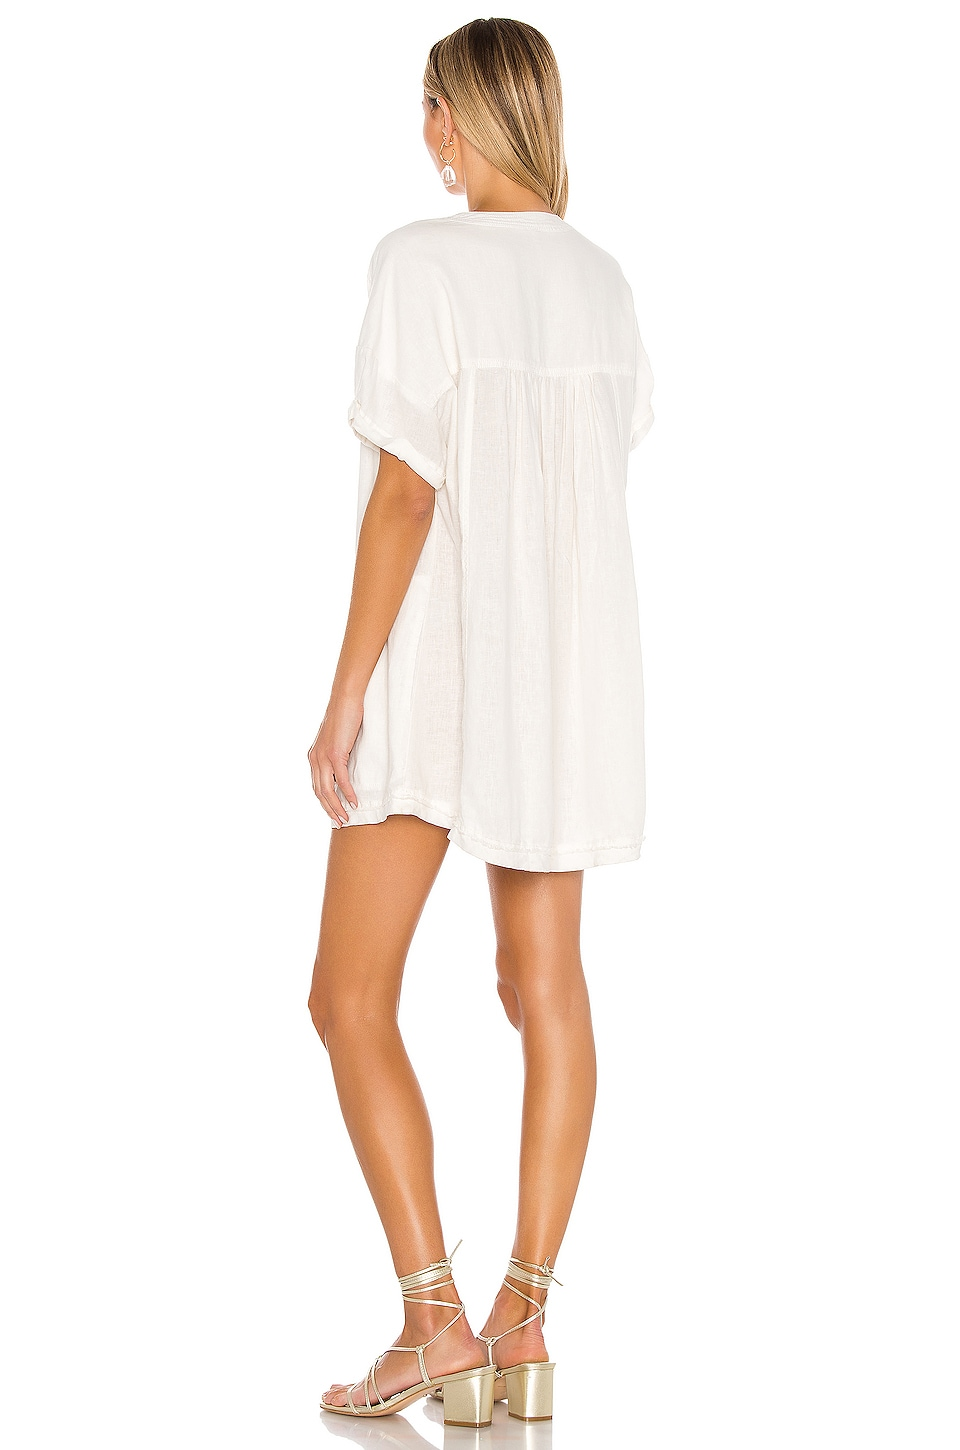 Getaway With Me Tunic, view 3, click to view large image.